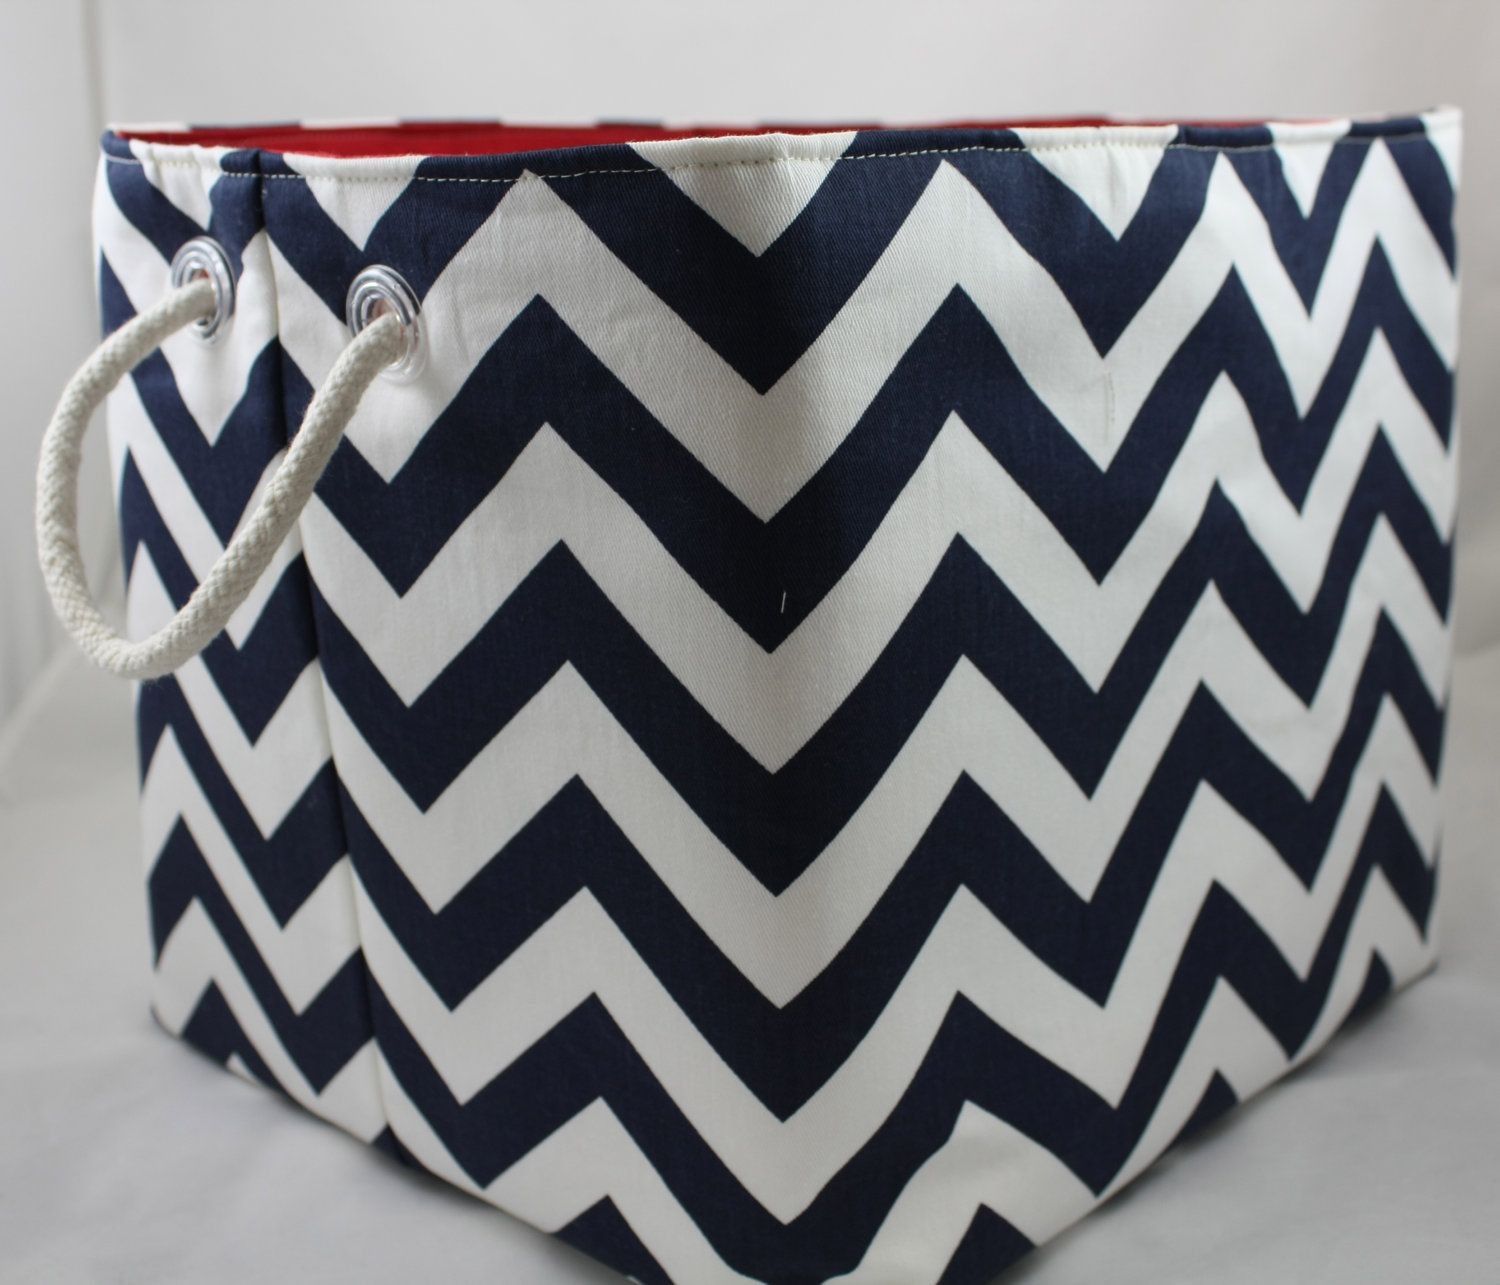 Genial NEW 12 X 12 X 10 Fabric Organizer Storage Container Basket Bin   ZigZag  Choose Your Color Combinations Rope Handles. $44.00, Via Etsy.